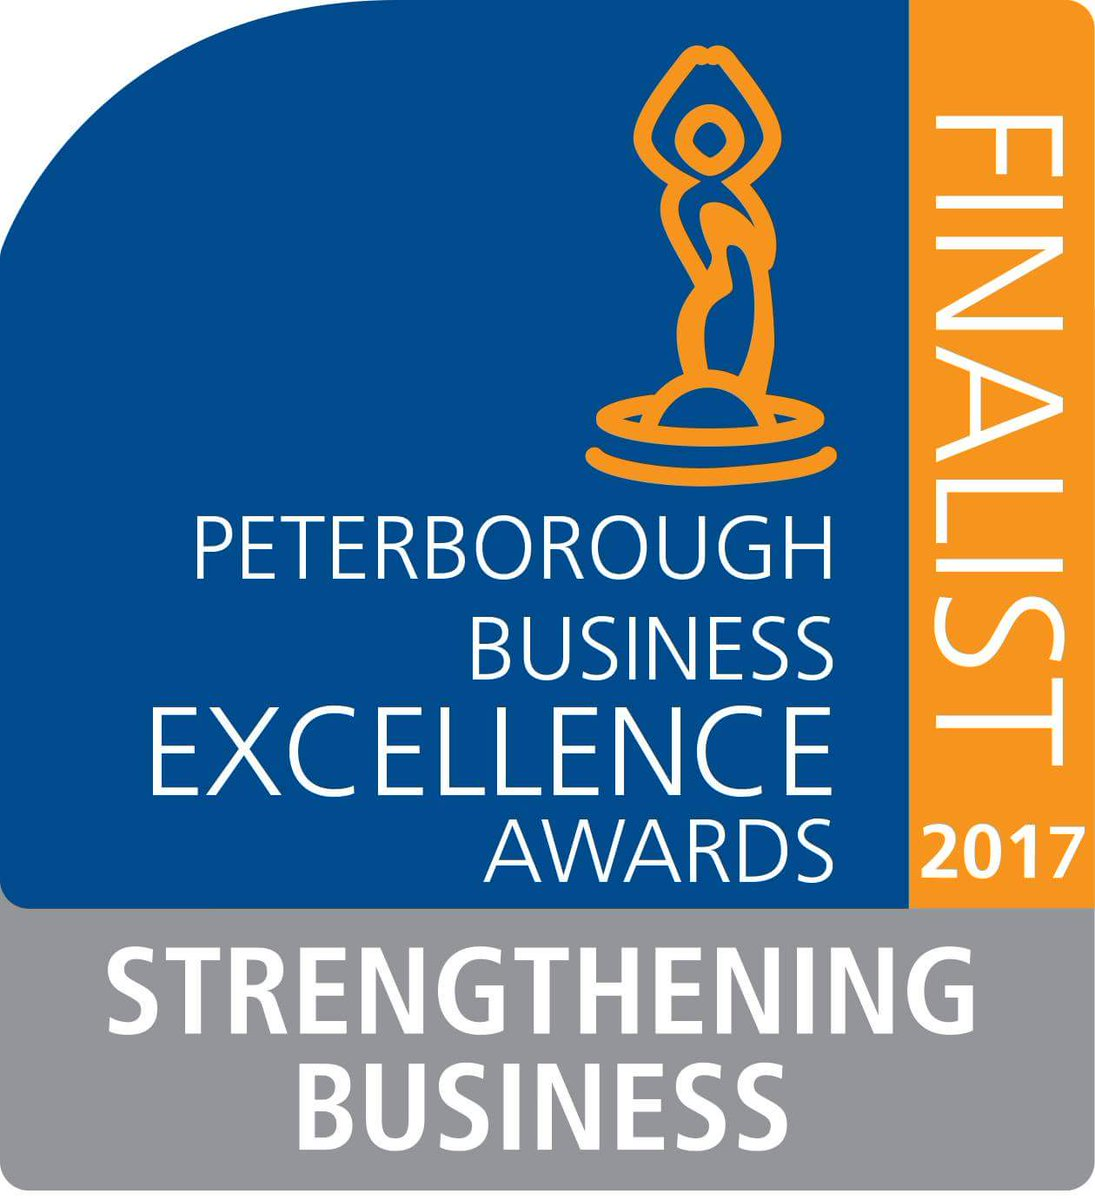 We are honored and thrilled to be nominated in the Tourism category along with two other amazing organization!  #WishUsLuck #ptbo #local <br>http://pic.twitter.com/gE5KIe4b4q